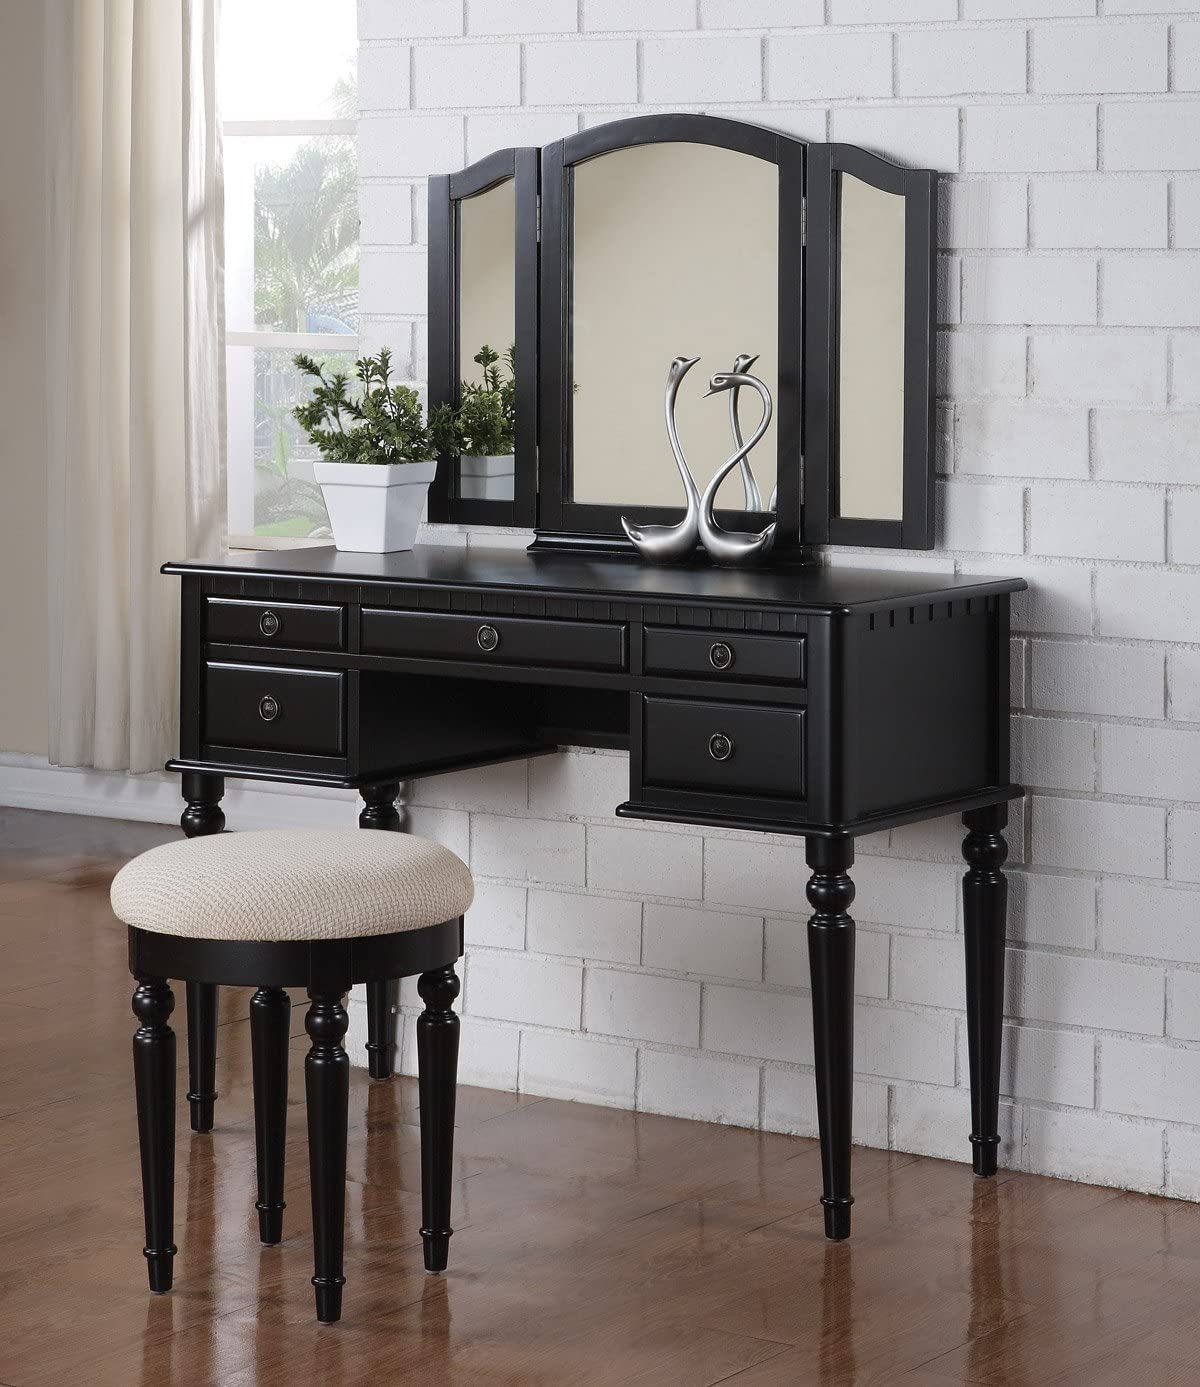 Five-drawers Black Finish Vantiy Table w Foldout Mirror Stool Vanity Set